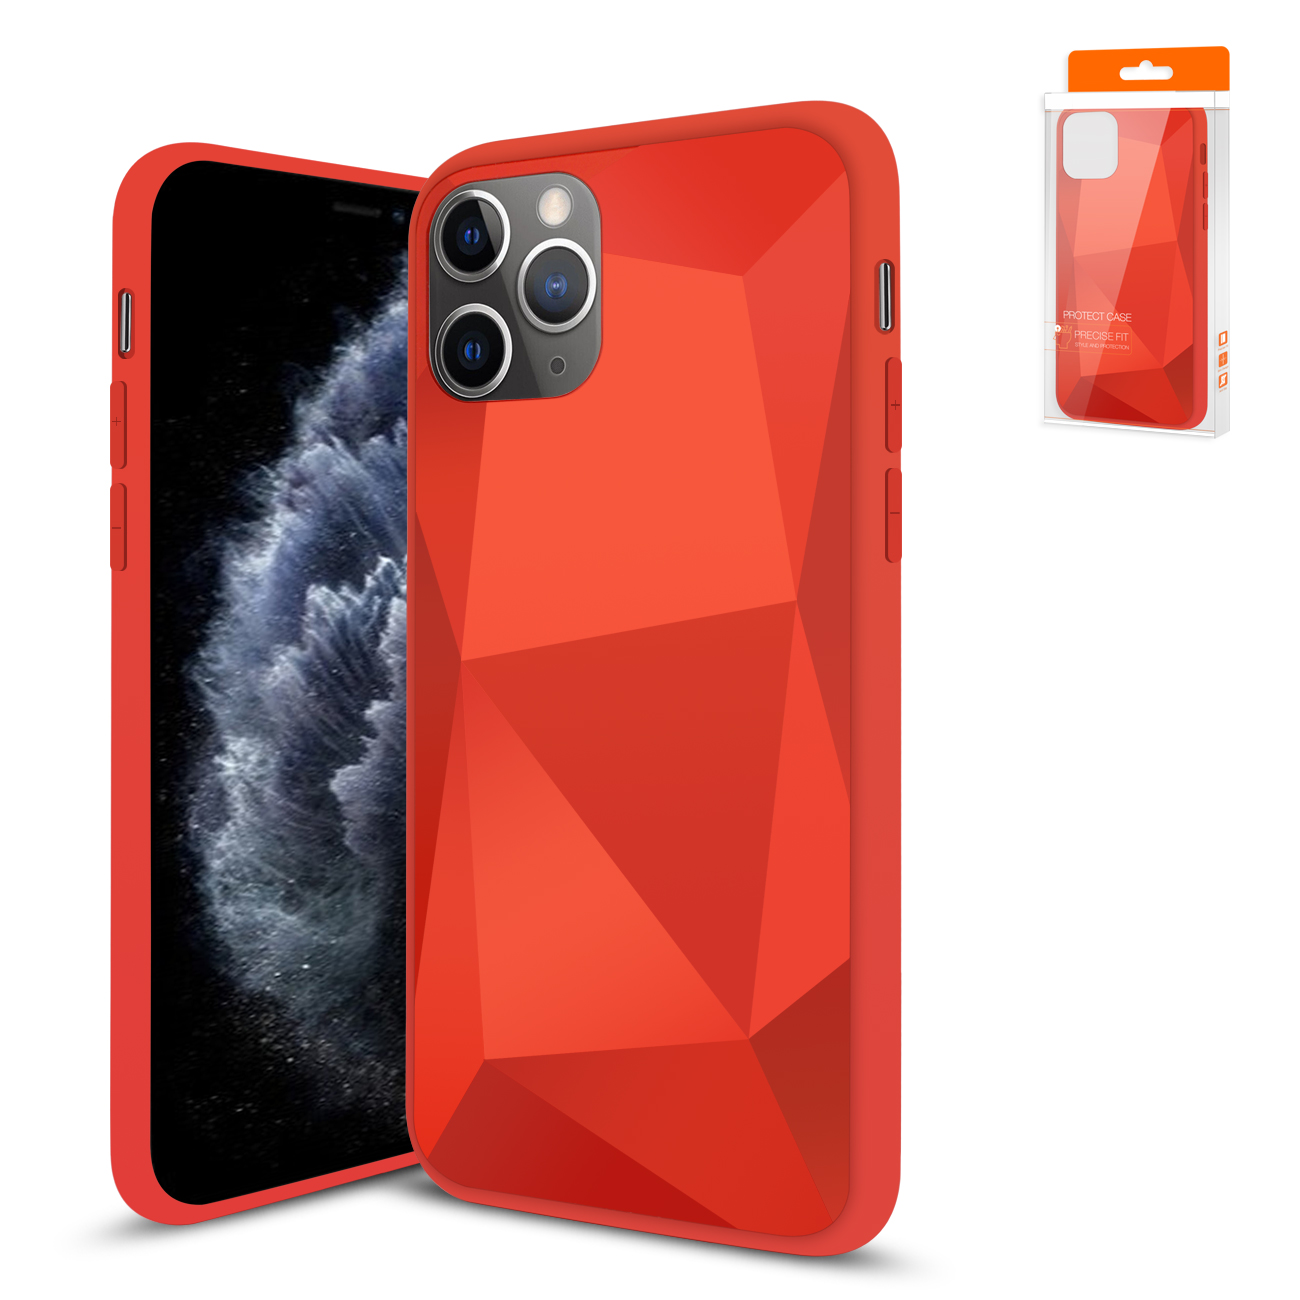 Apple iPhone 11 Pro Apple Diamond Cases In Red